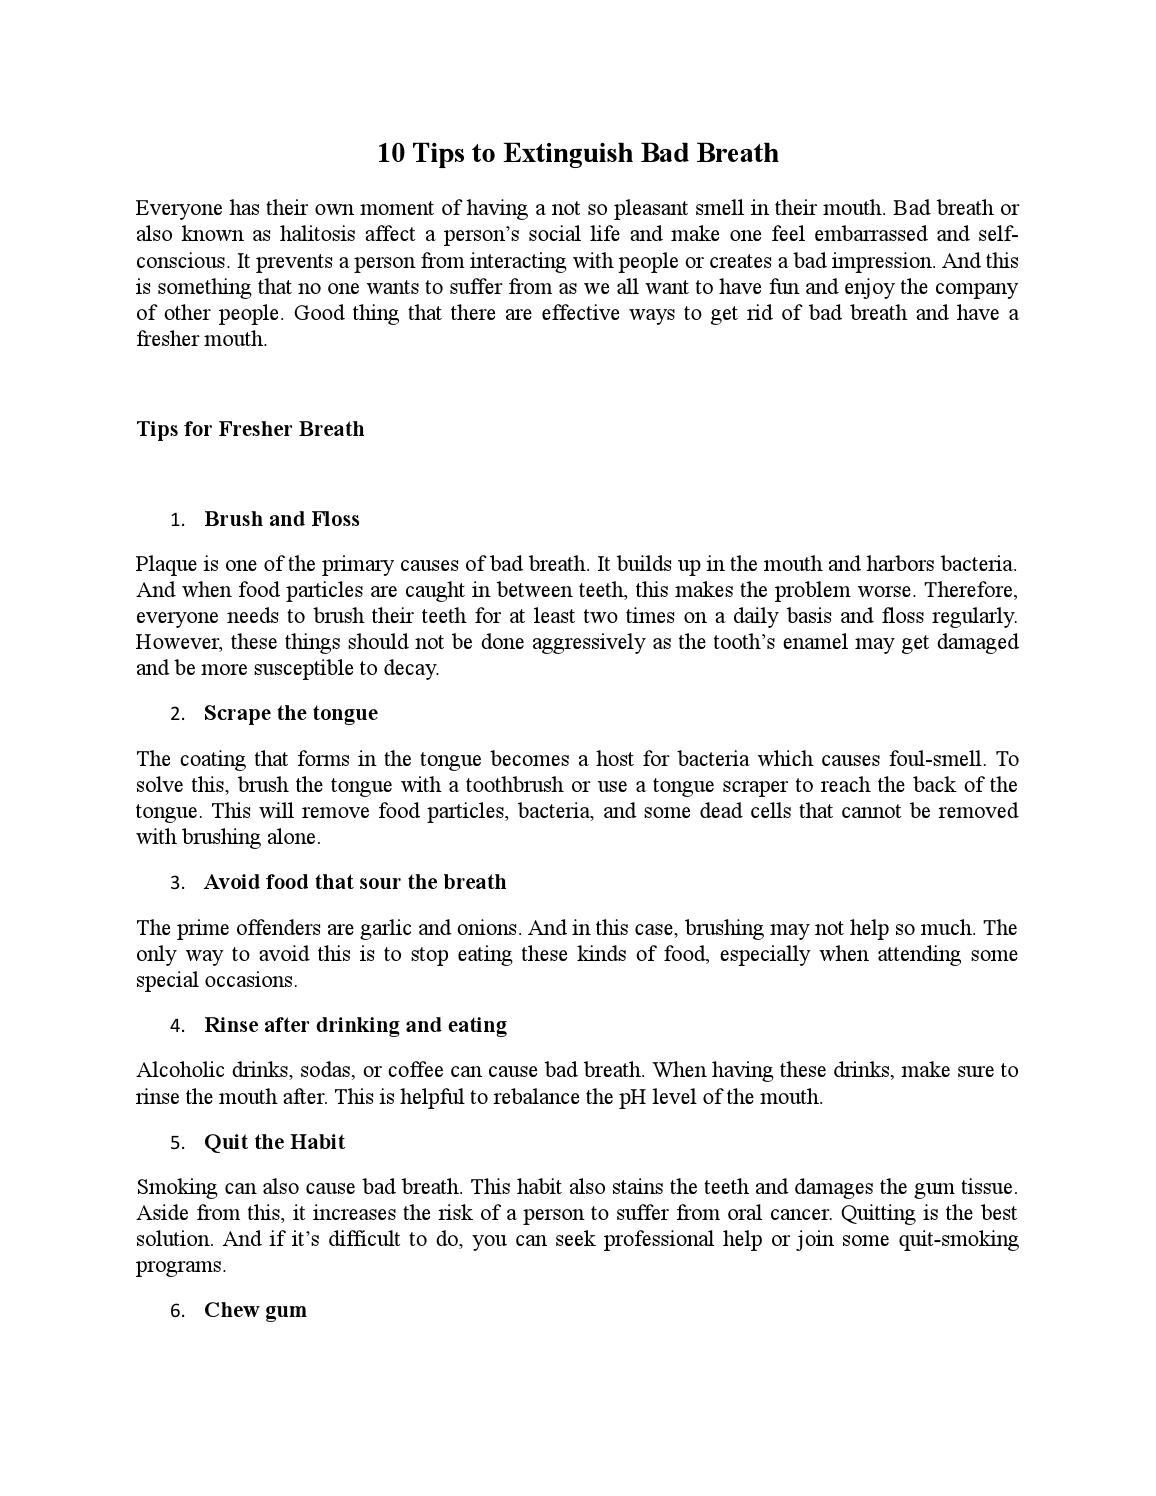 10 tips to extinguish bad breath by Jonathan McNeil - issuu